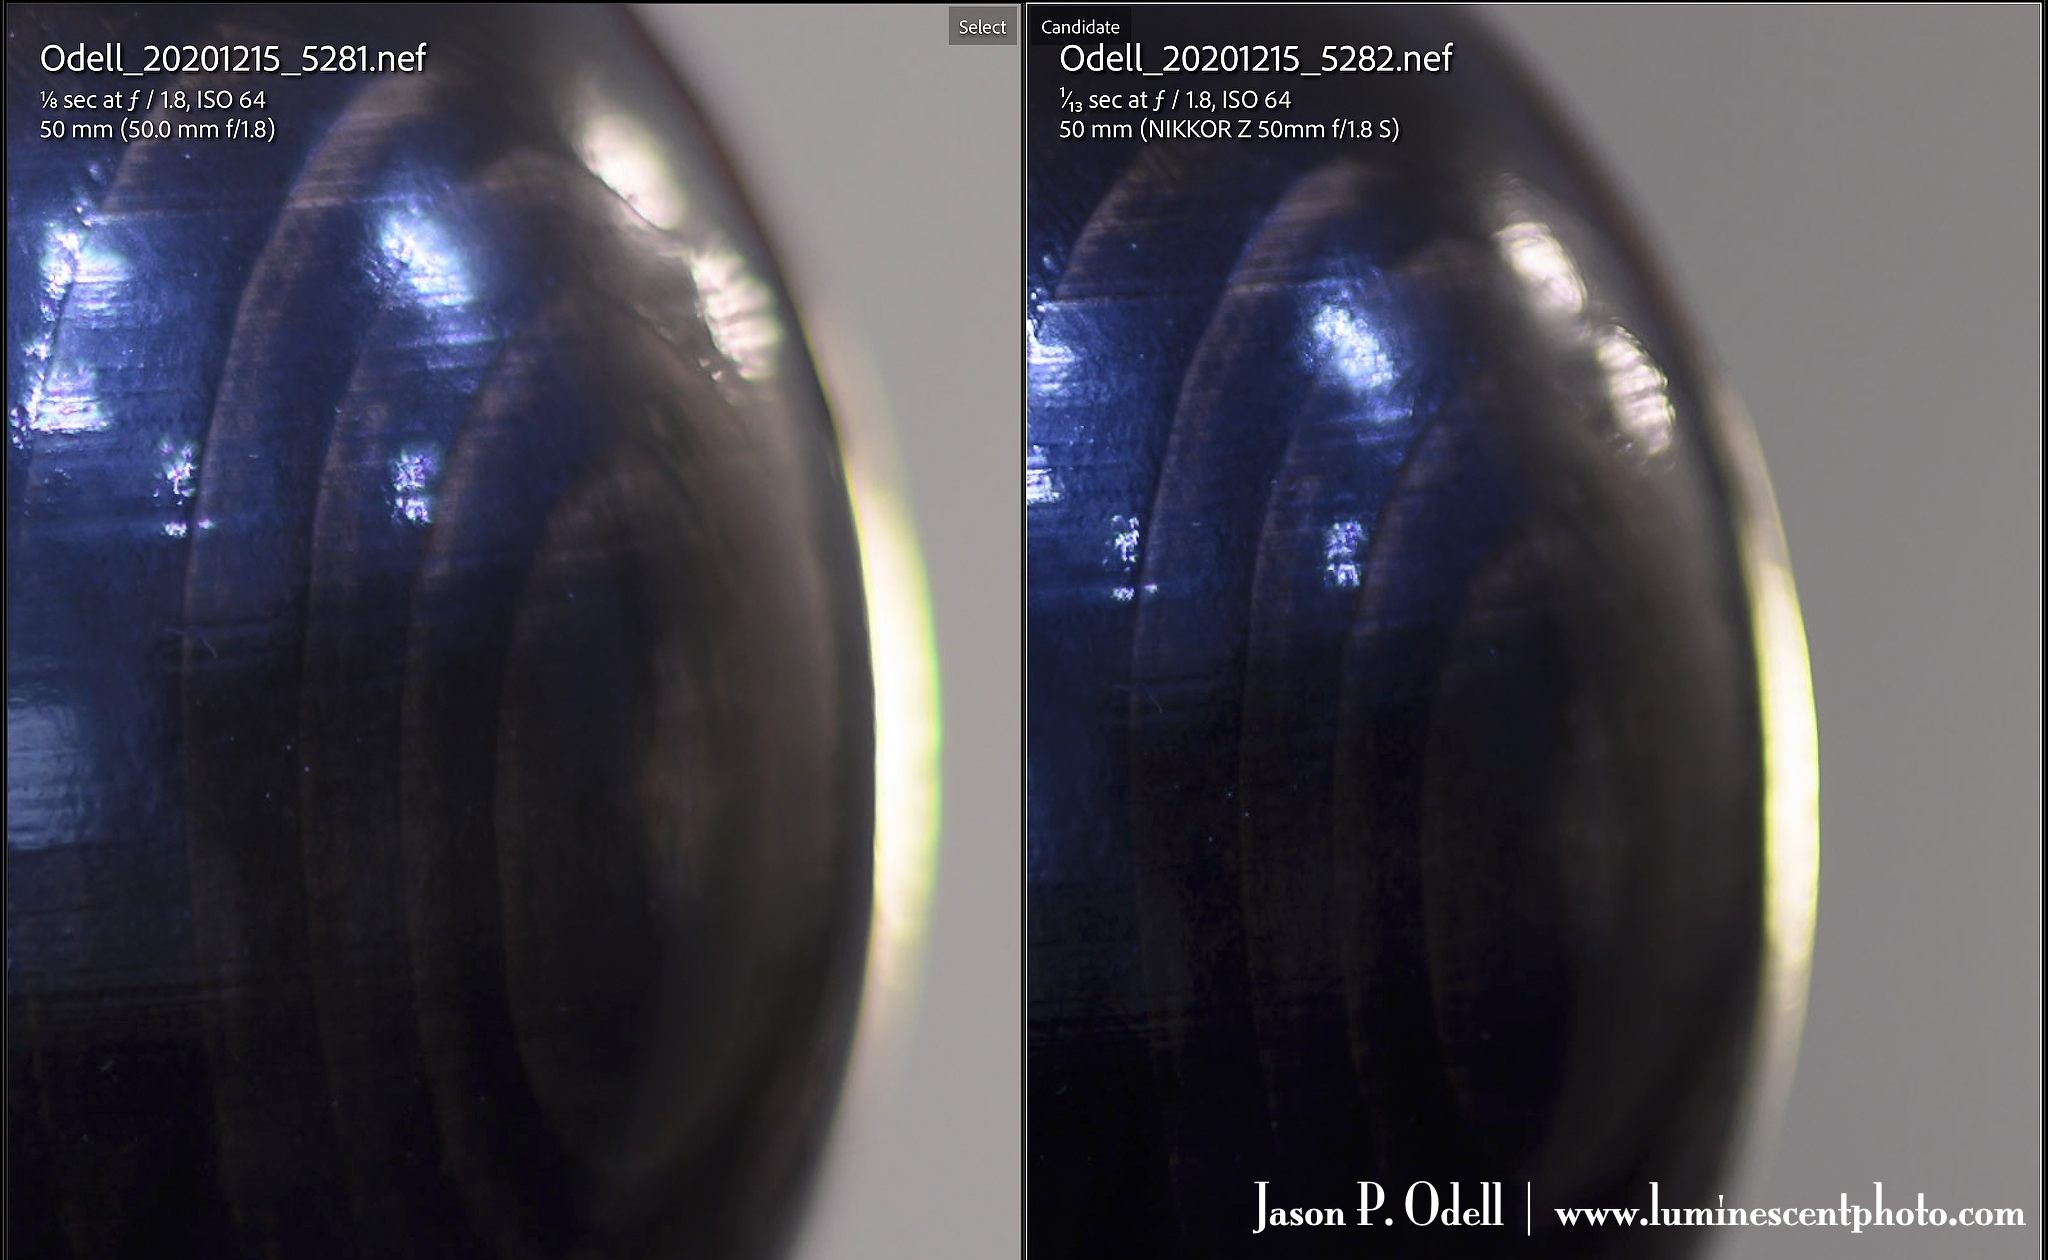 Comparison of chromatic aberration between Nikon 50mm f/1.8G and 50mm f/1.8S Nikkor lenses